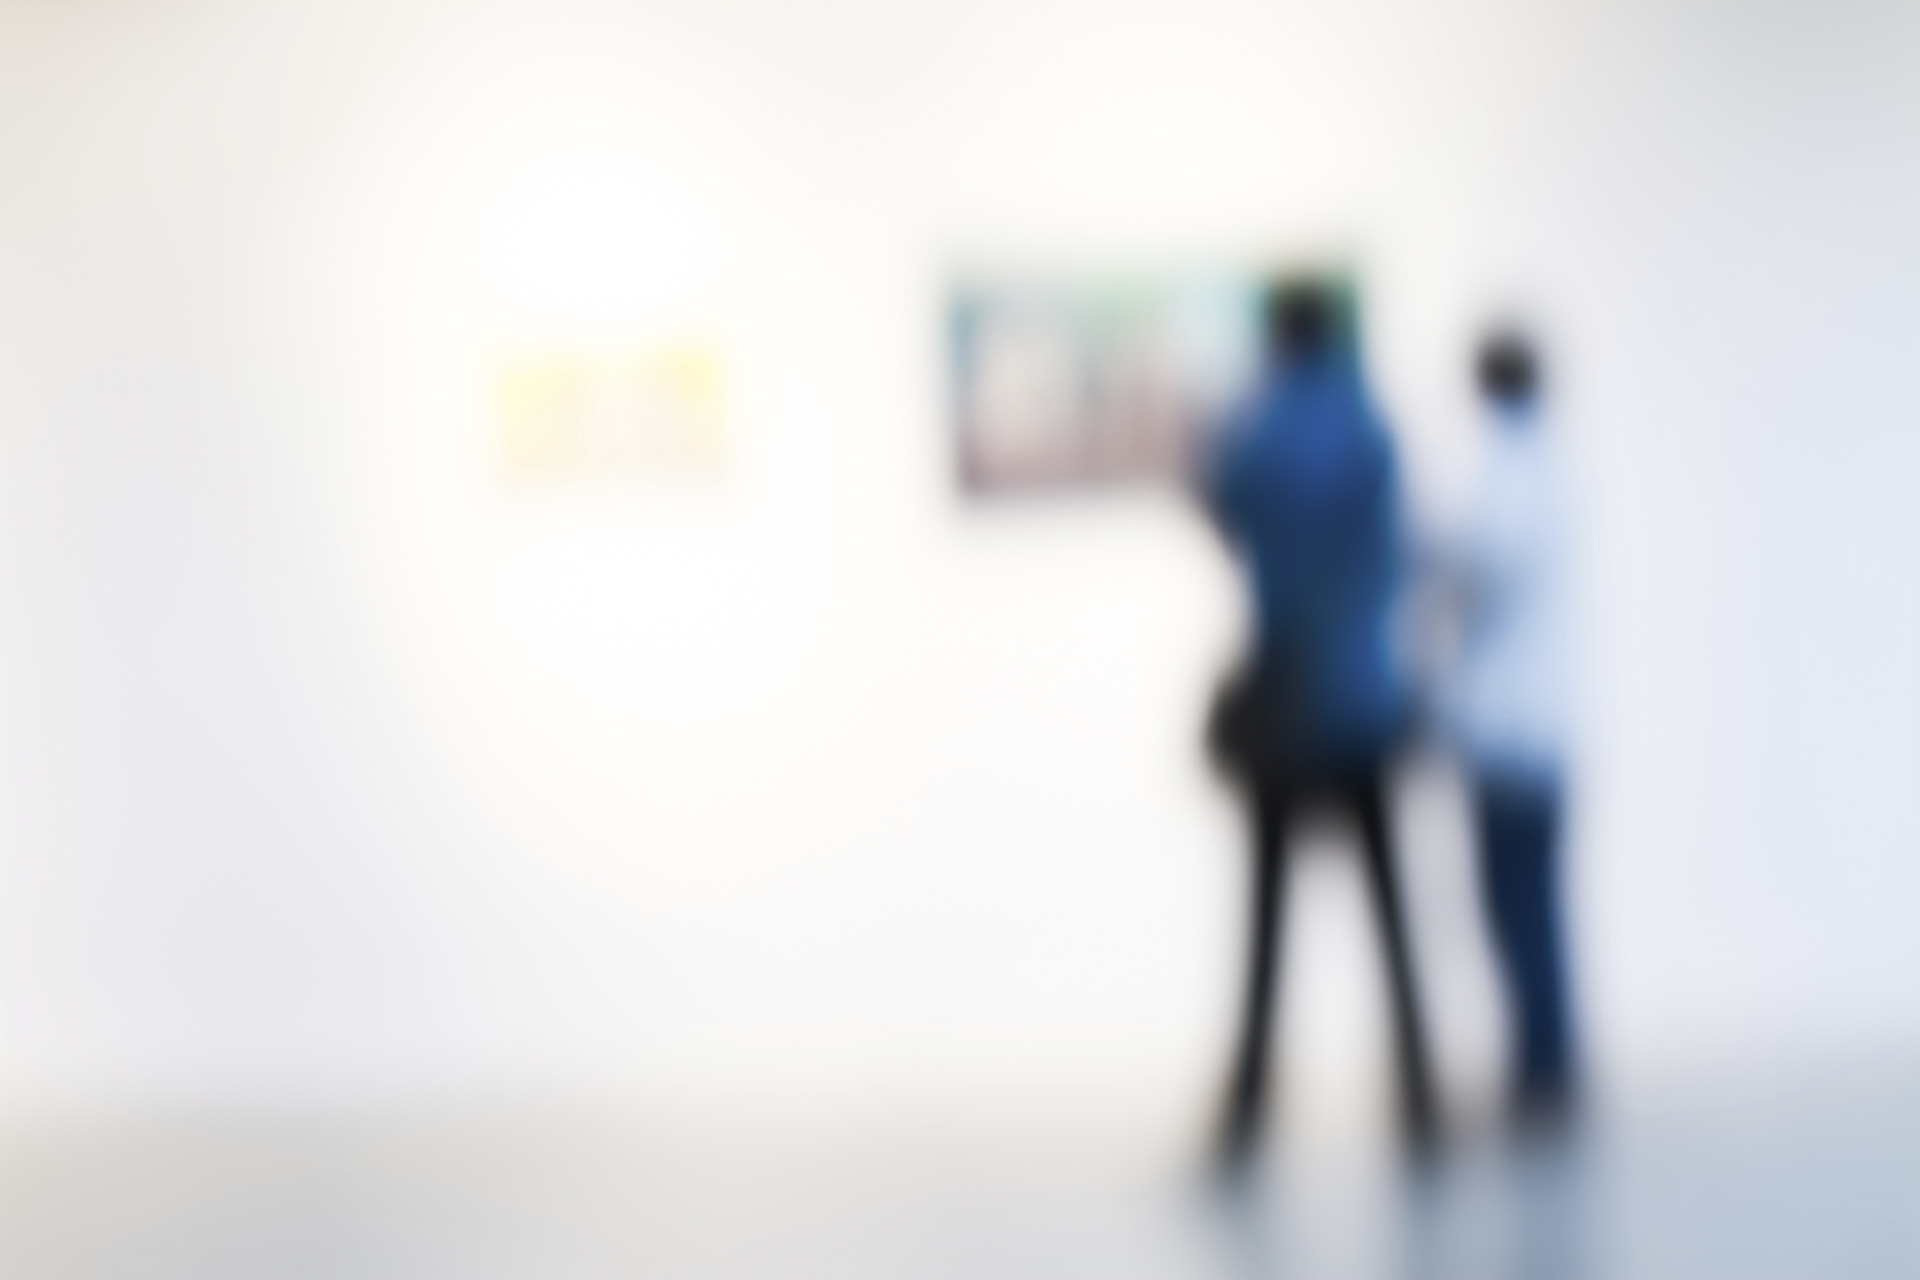 blurred touist watching paintings in a museum